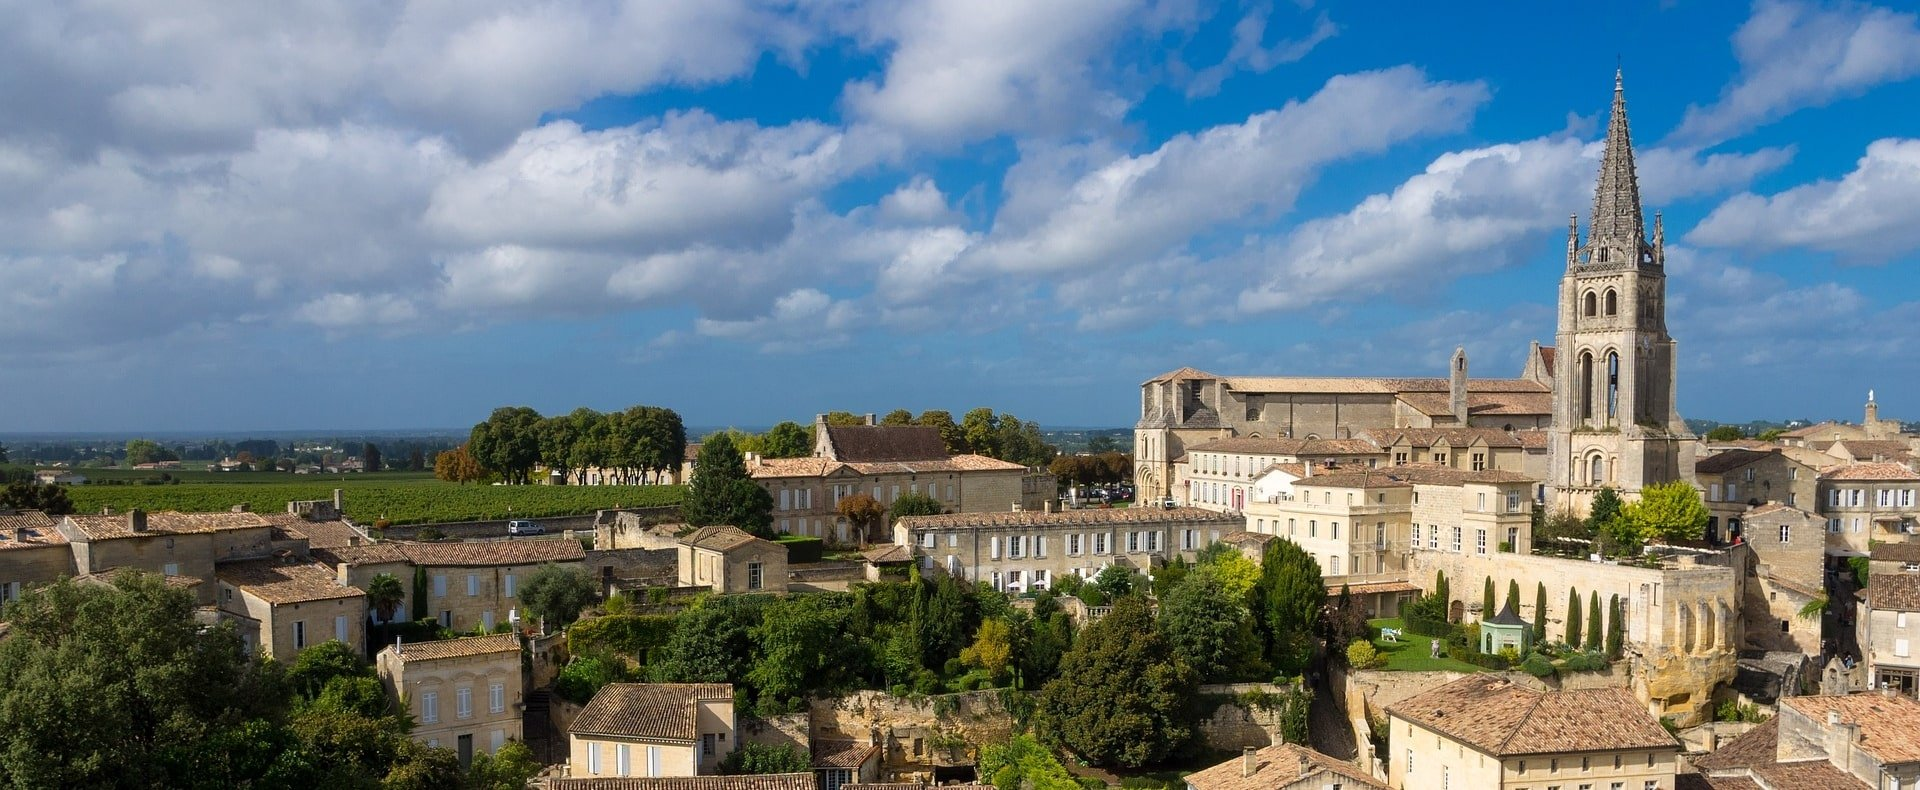 Saint Emilion Day Trip